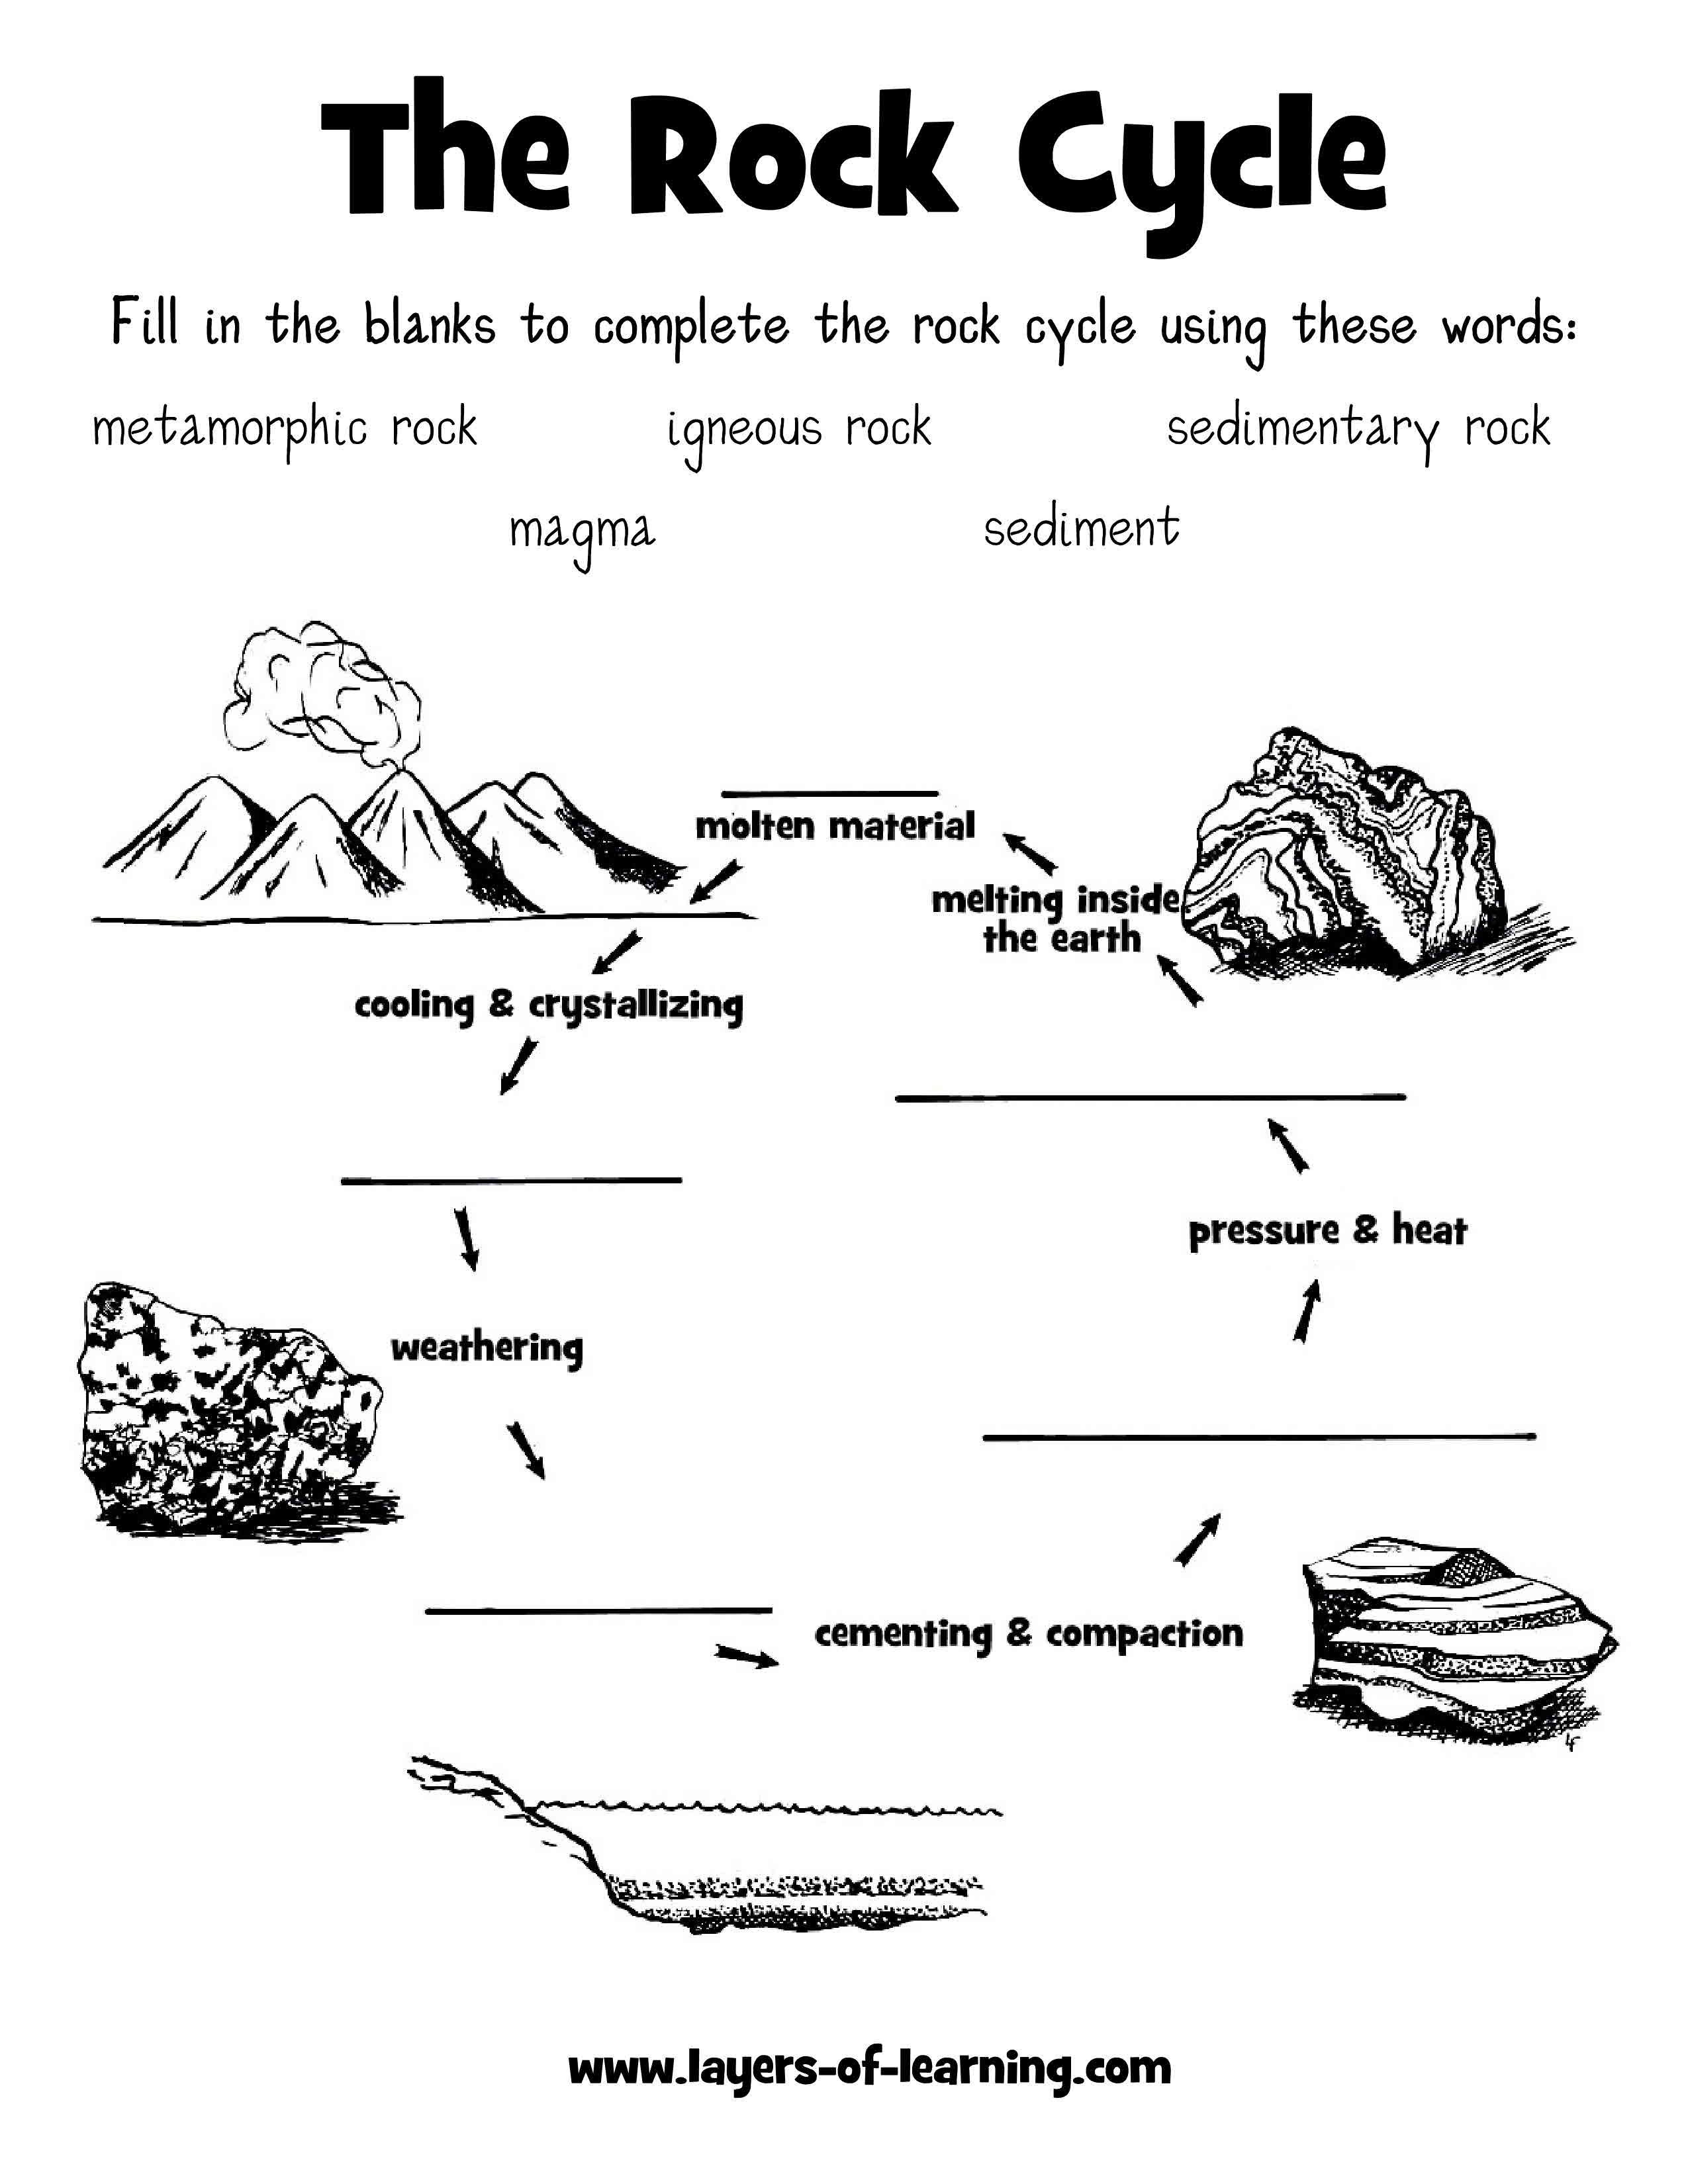 Rock Cycle Worksheet - Layers Of Learning   Science   Rock Cycle   Rock Cycle Worksheets Free Printable